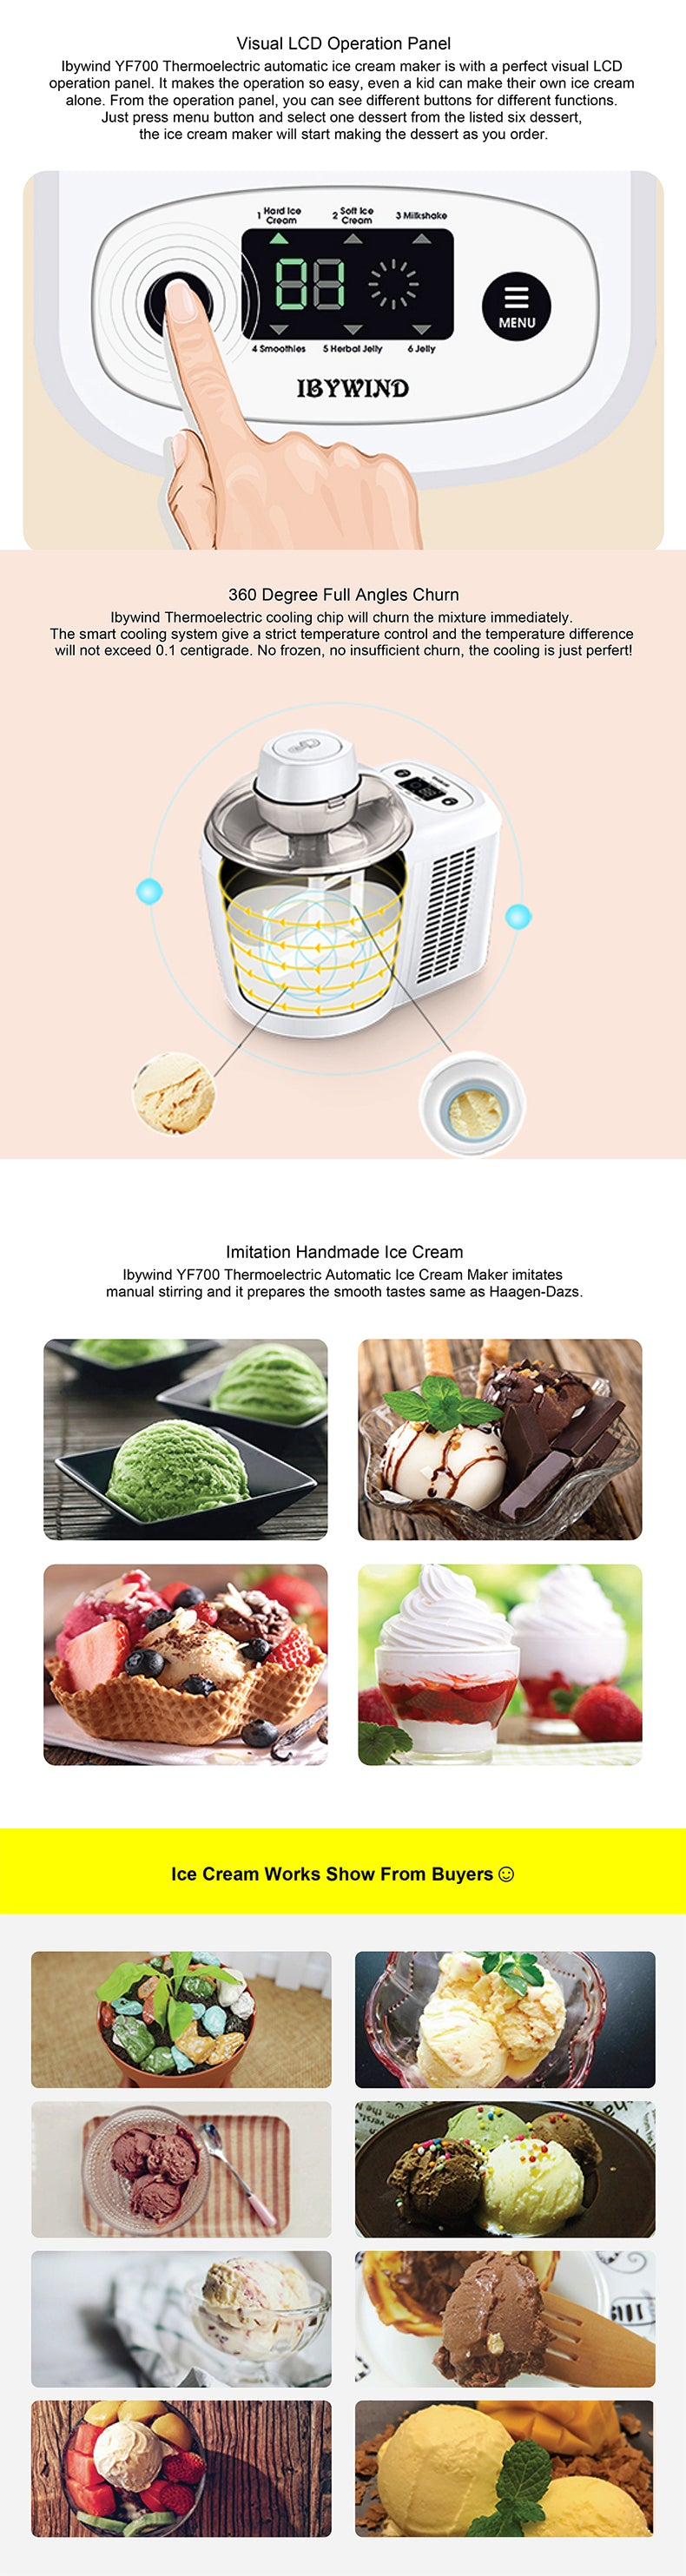 Ibywind YF700 Thermoelectric Automatic Ice Cream Maker